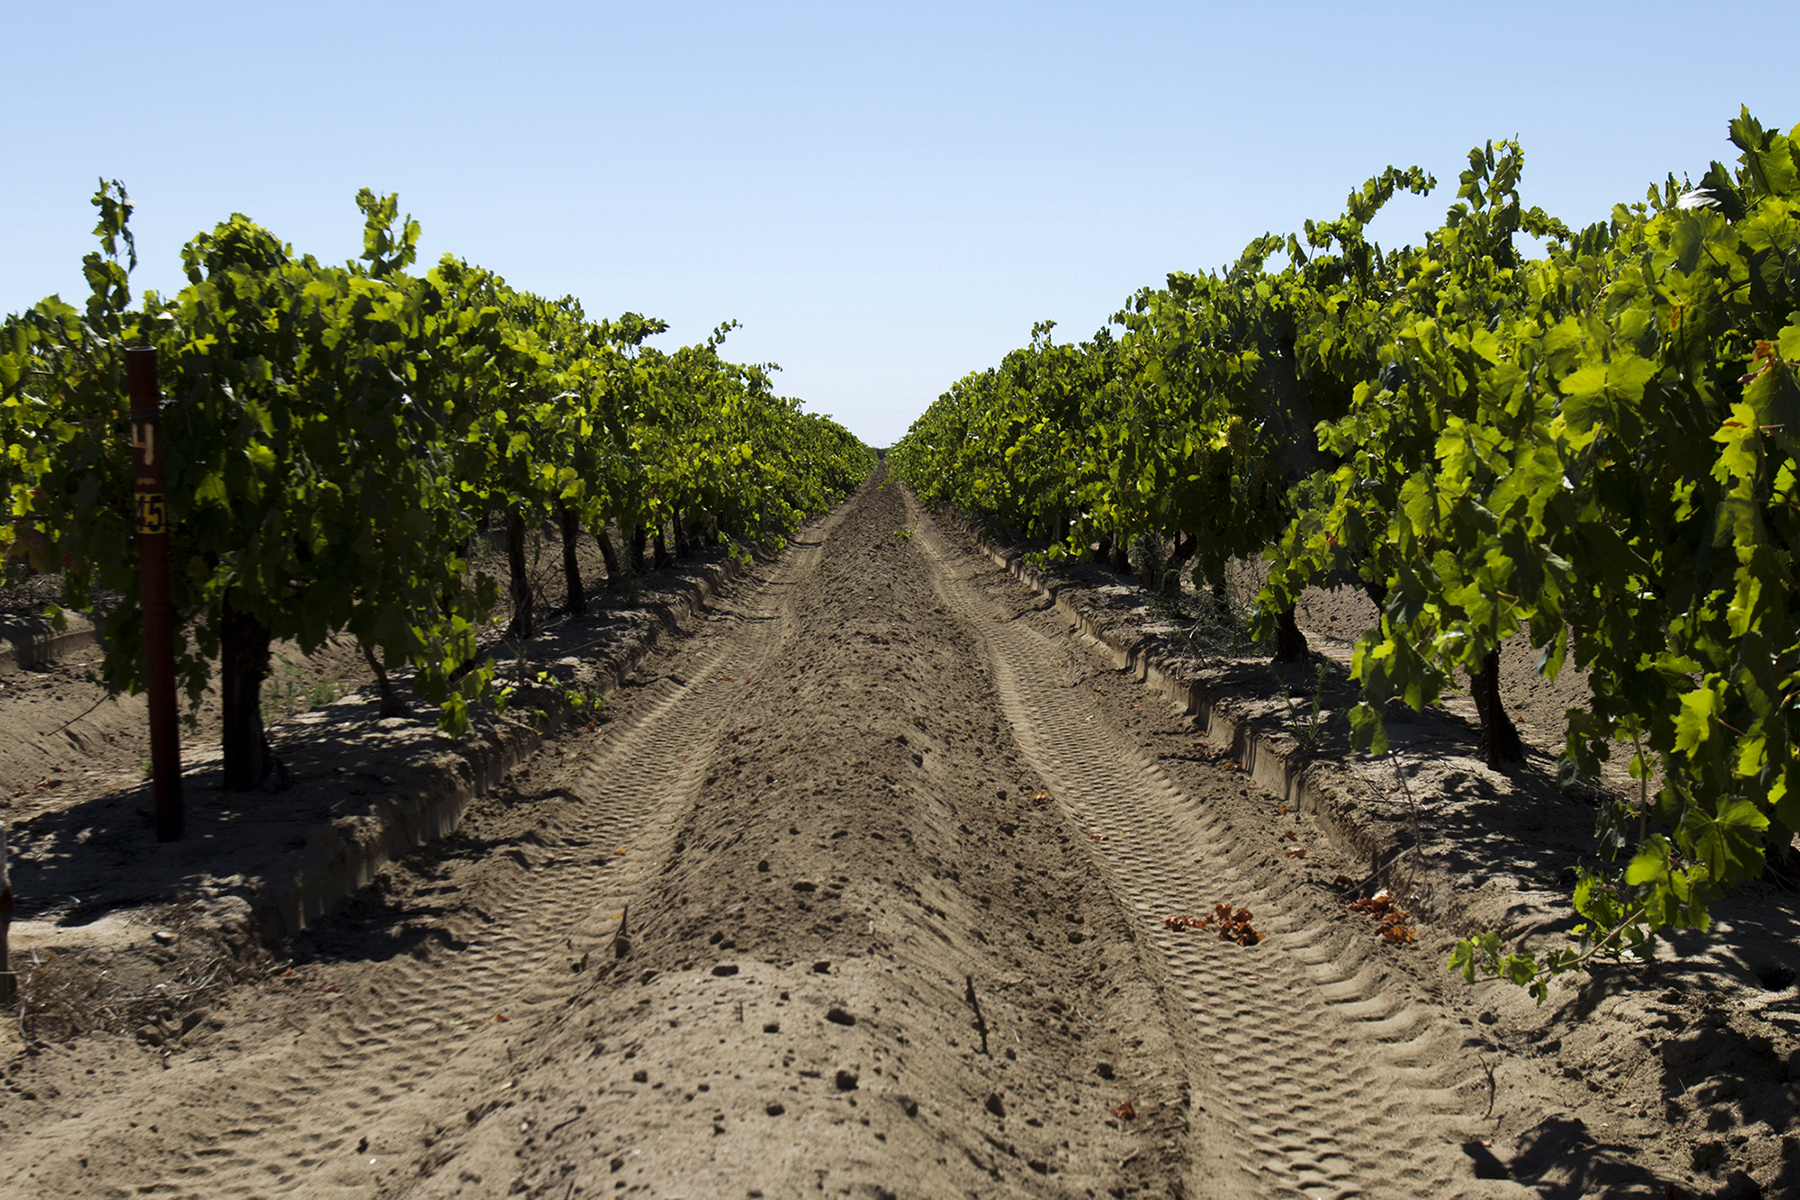 Madera, an agricultural town outside of Fresno, is lined with vineyards and nut tree groves. The town's population is 78 percent Latino. (Alejandra Armstrong/News21)